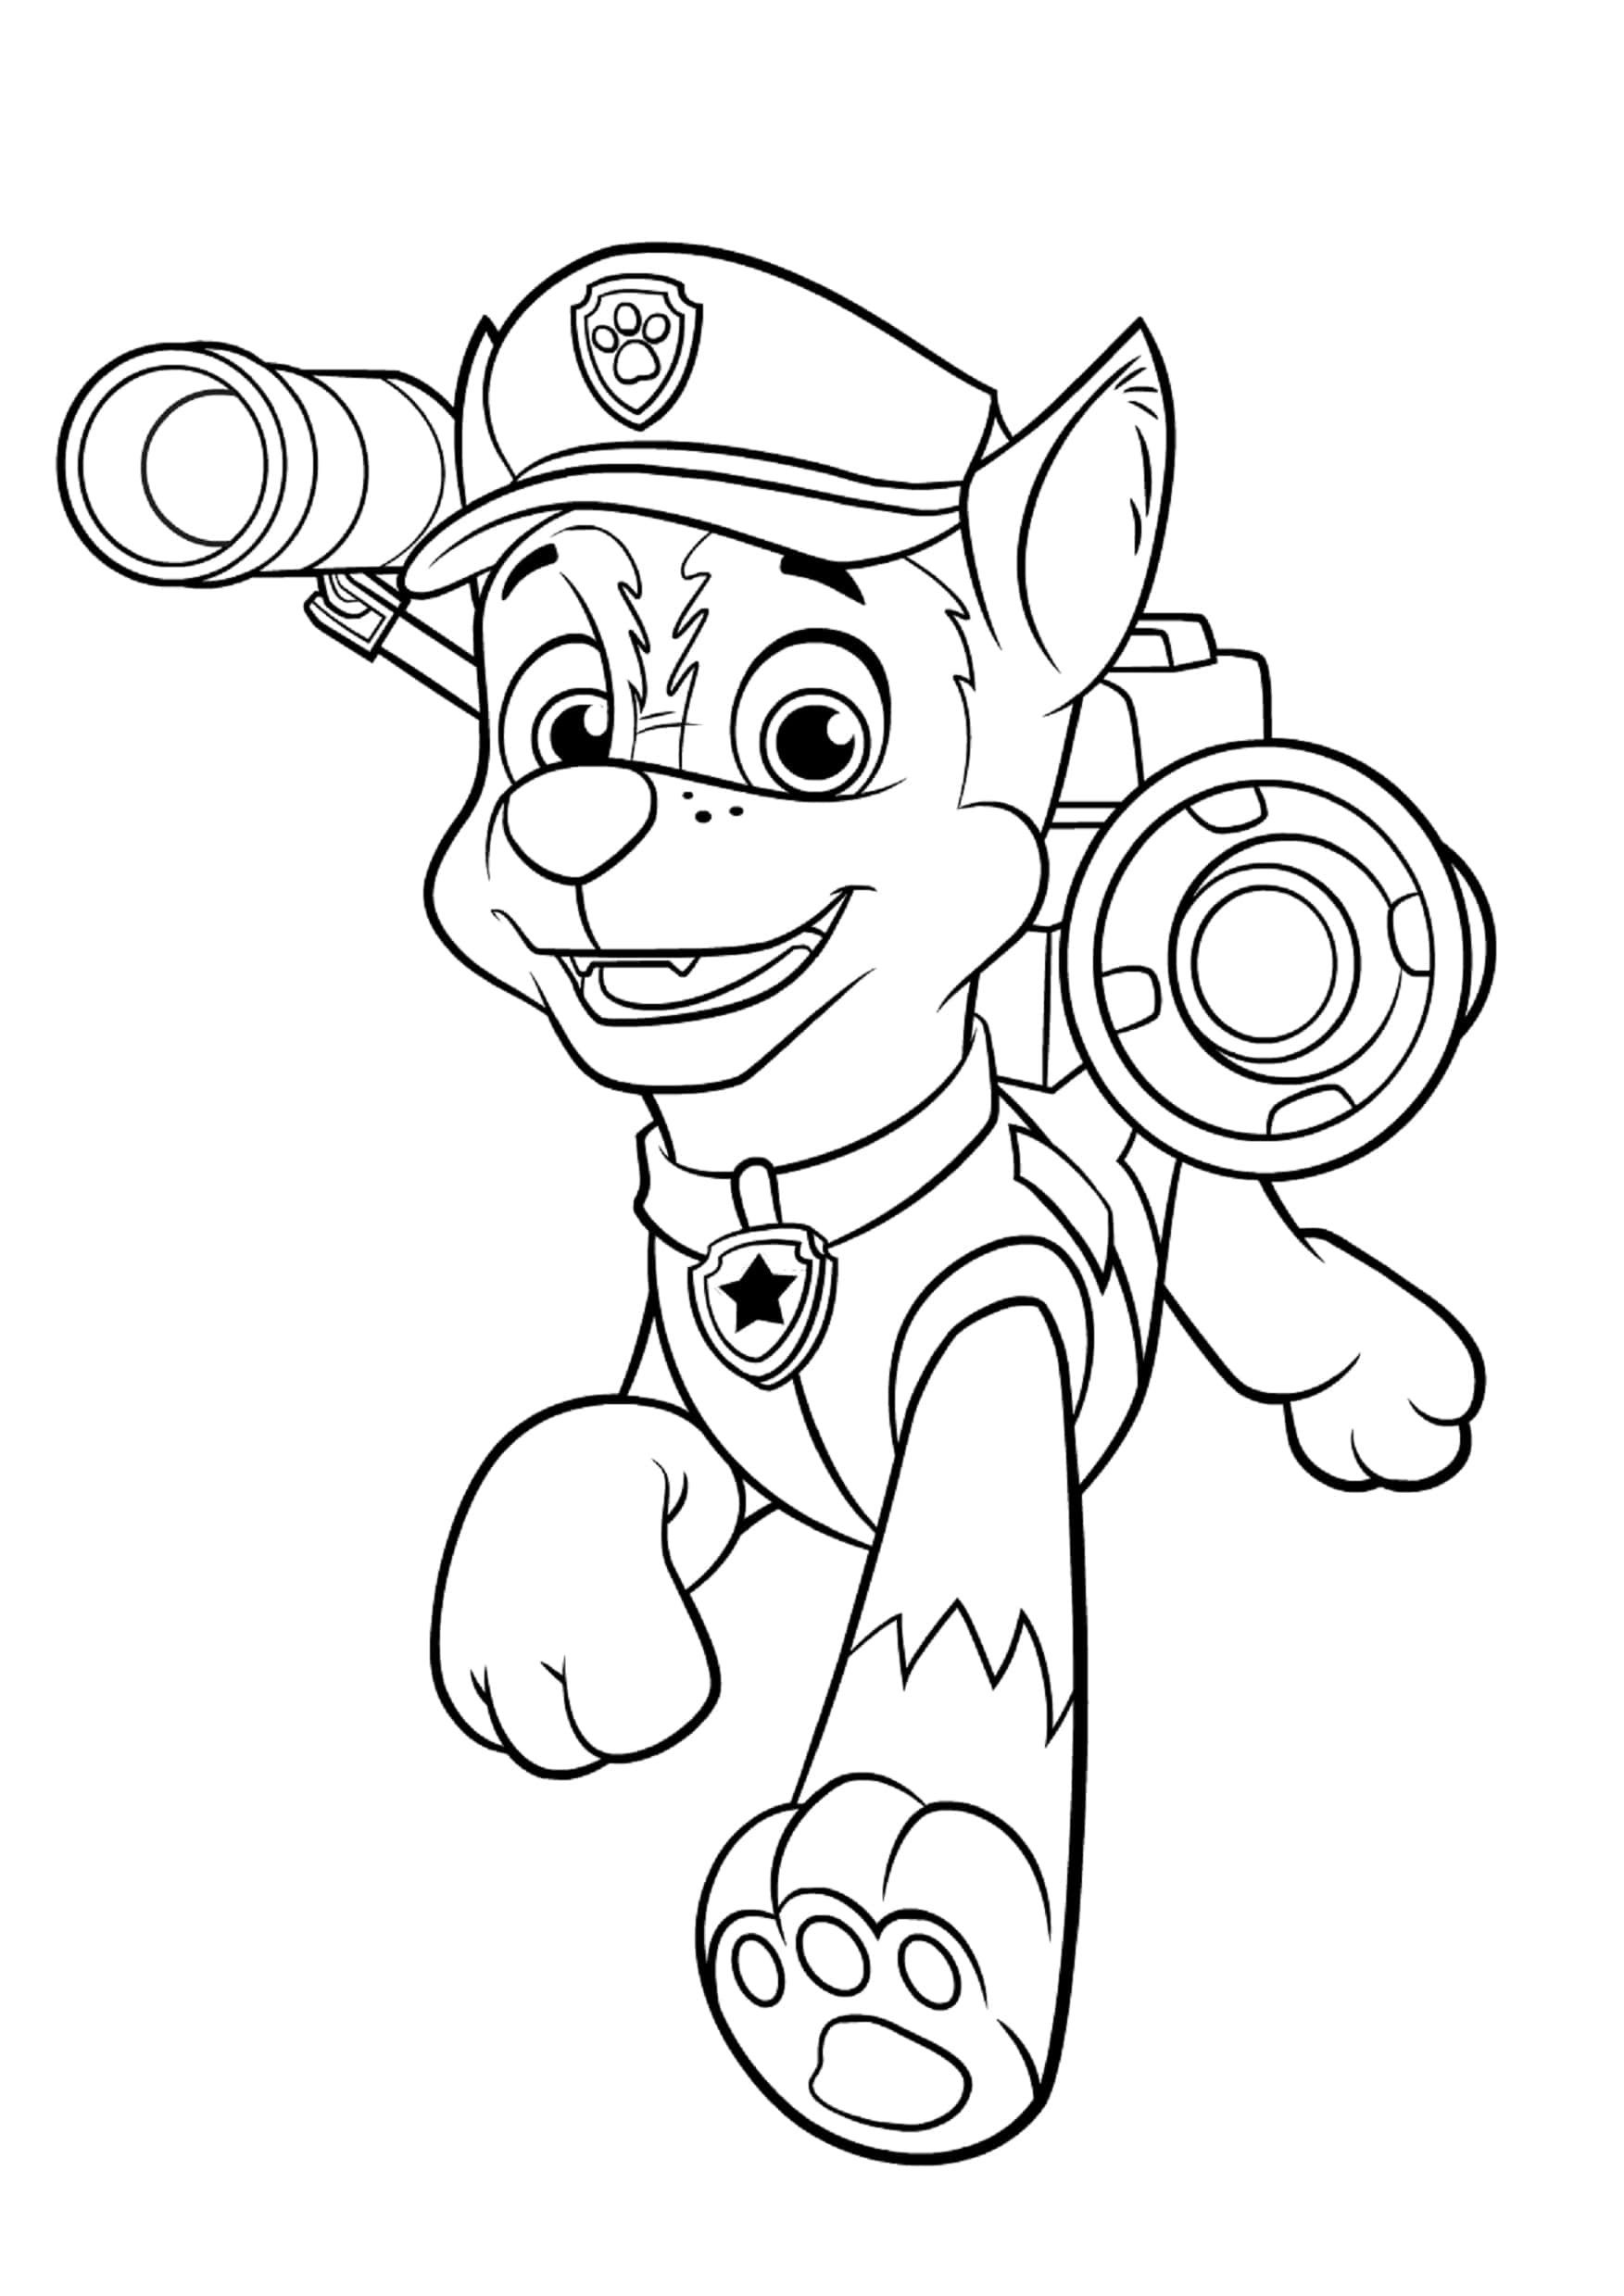 Paw Patrol Easter Coloring Pages Best Coloring 31 Most Fab Pages For Kids Paw Patrol Arti In 2020 Paw Patrol Coloring Pages Paw Patrol Coloring Birthday Coloring Pages